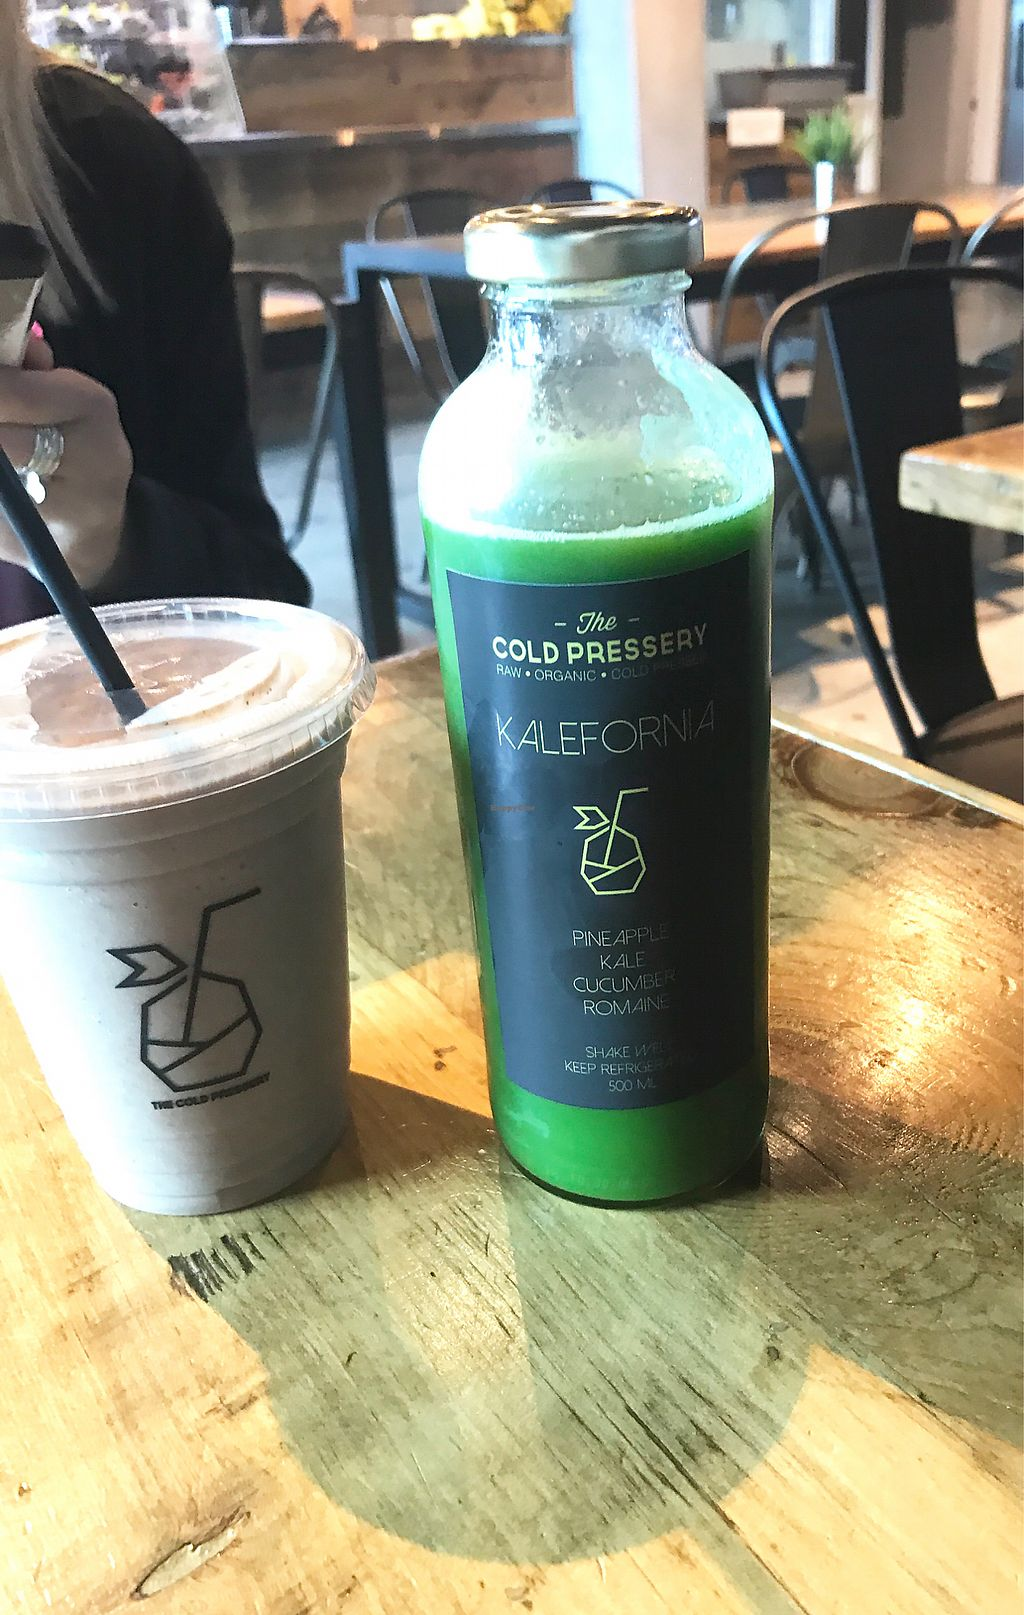 """Photo of The Cold Pressery  by <a href=""""/members/profile/EmilyRogan"""">EmilyRogan</a> <br/>Juice & smoothie <br/> August 30, 2017  - <a href='/contact/abuse/image/61073/298953'>Report</a>"""